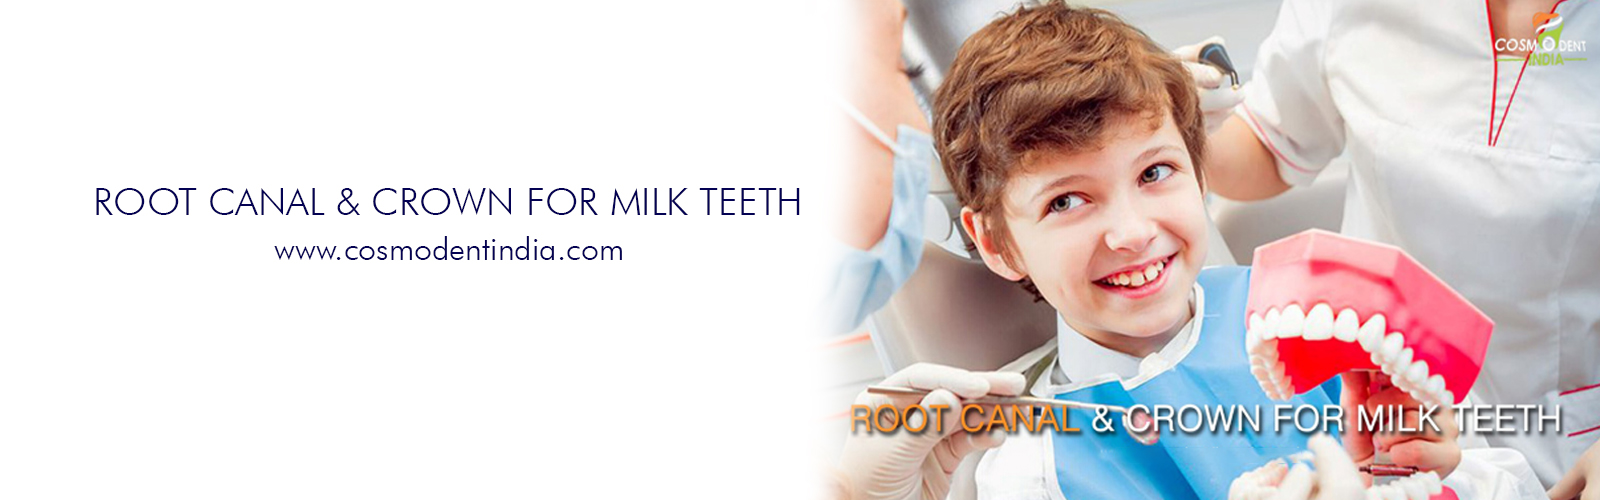 kids-crown-and-root-canal